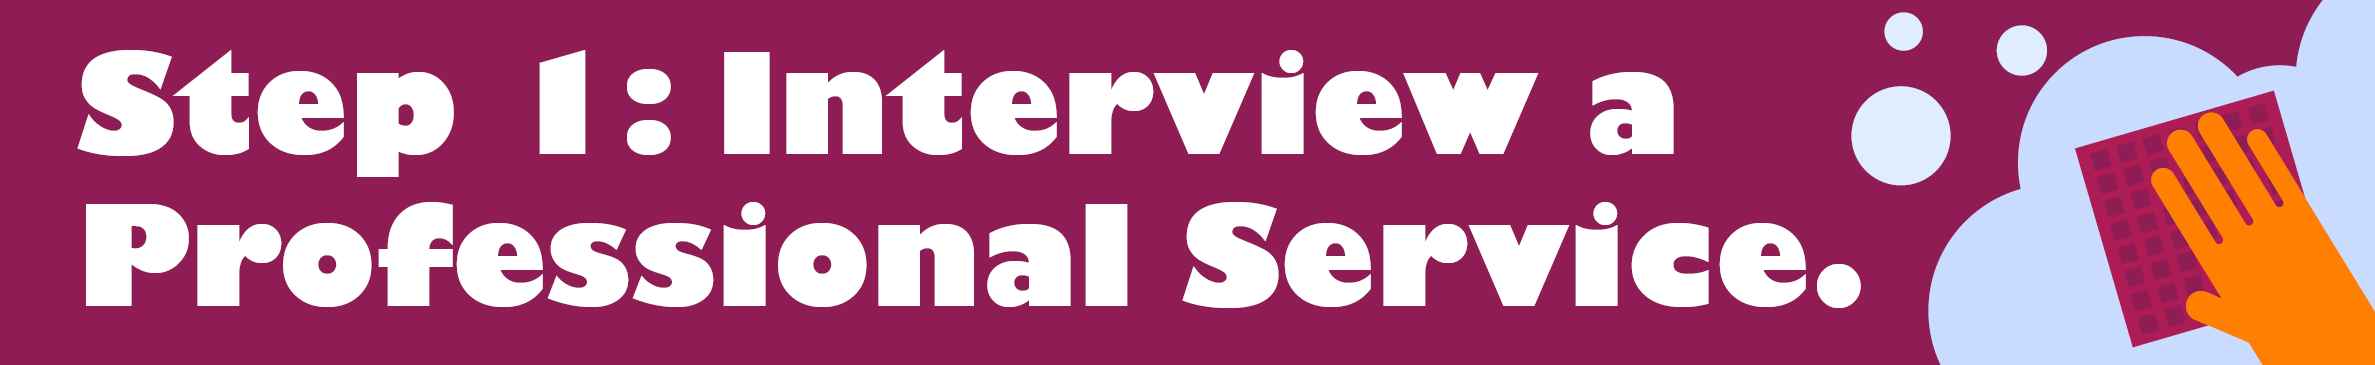 Interview a professional service